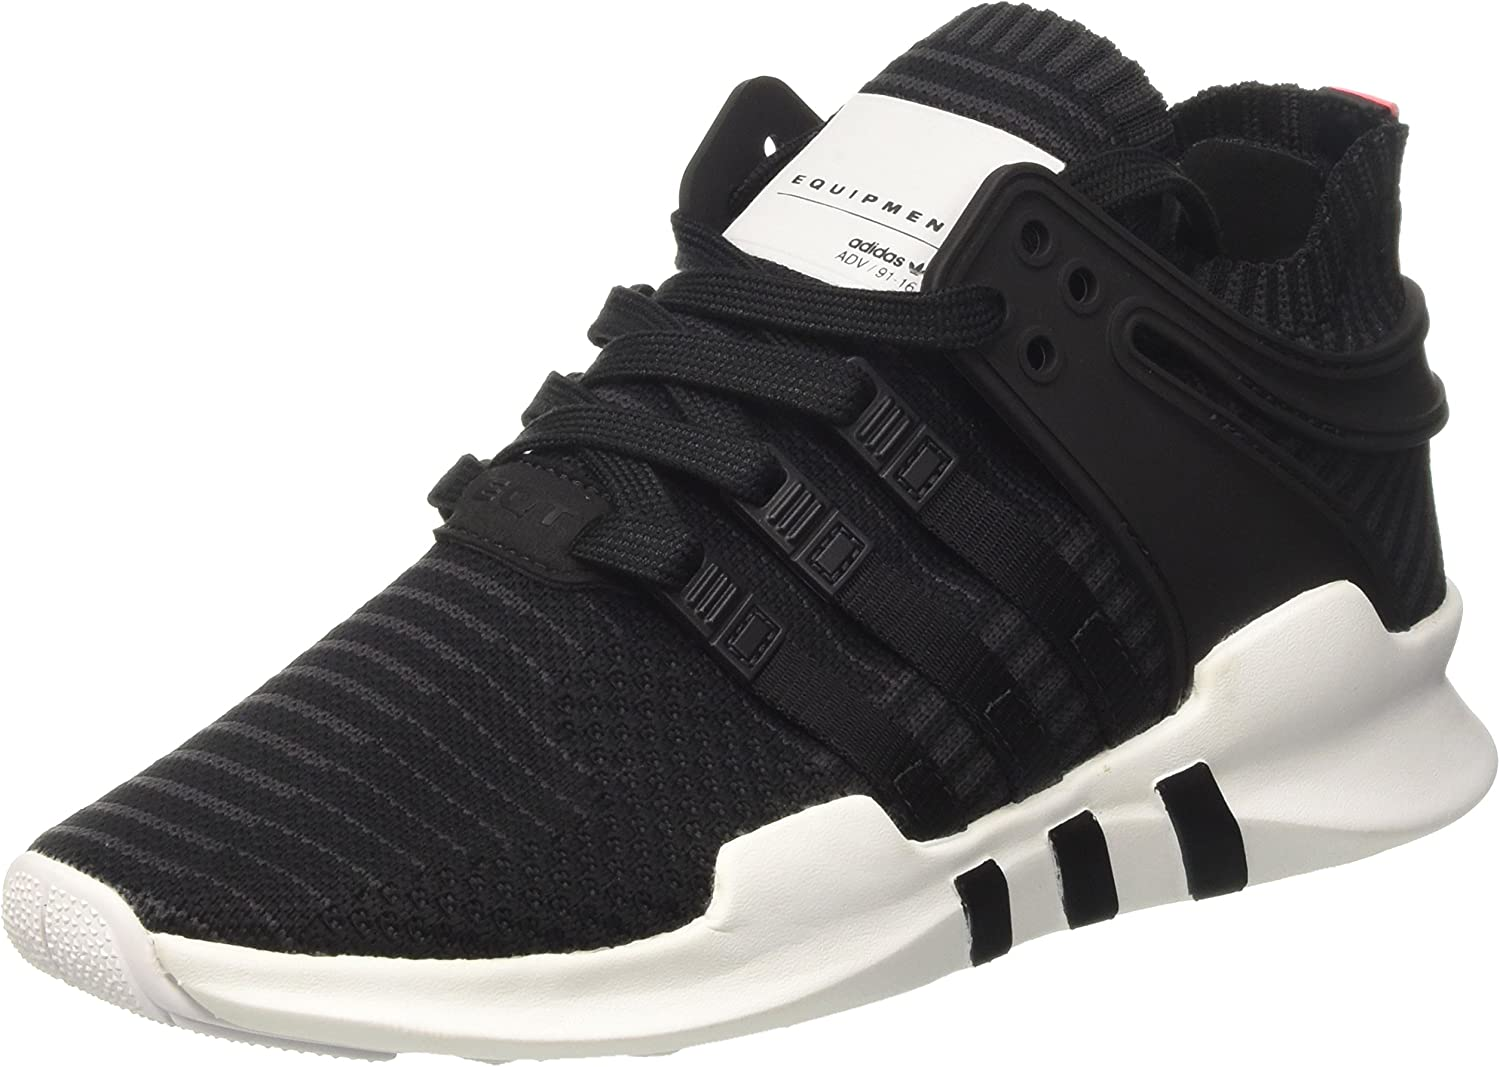 Adidas Equipment Support Adv Pk, Unisex Adults' Low Trainers